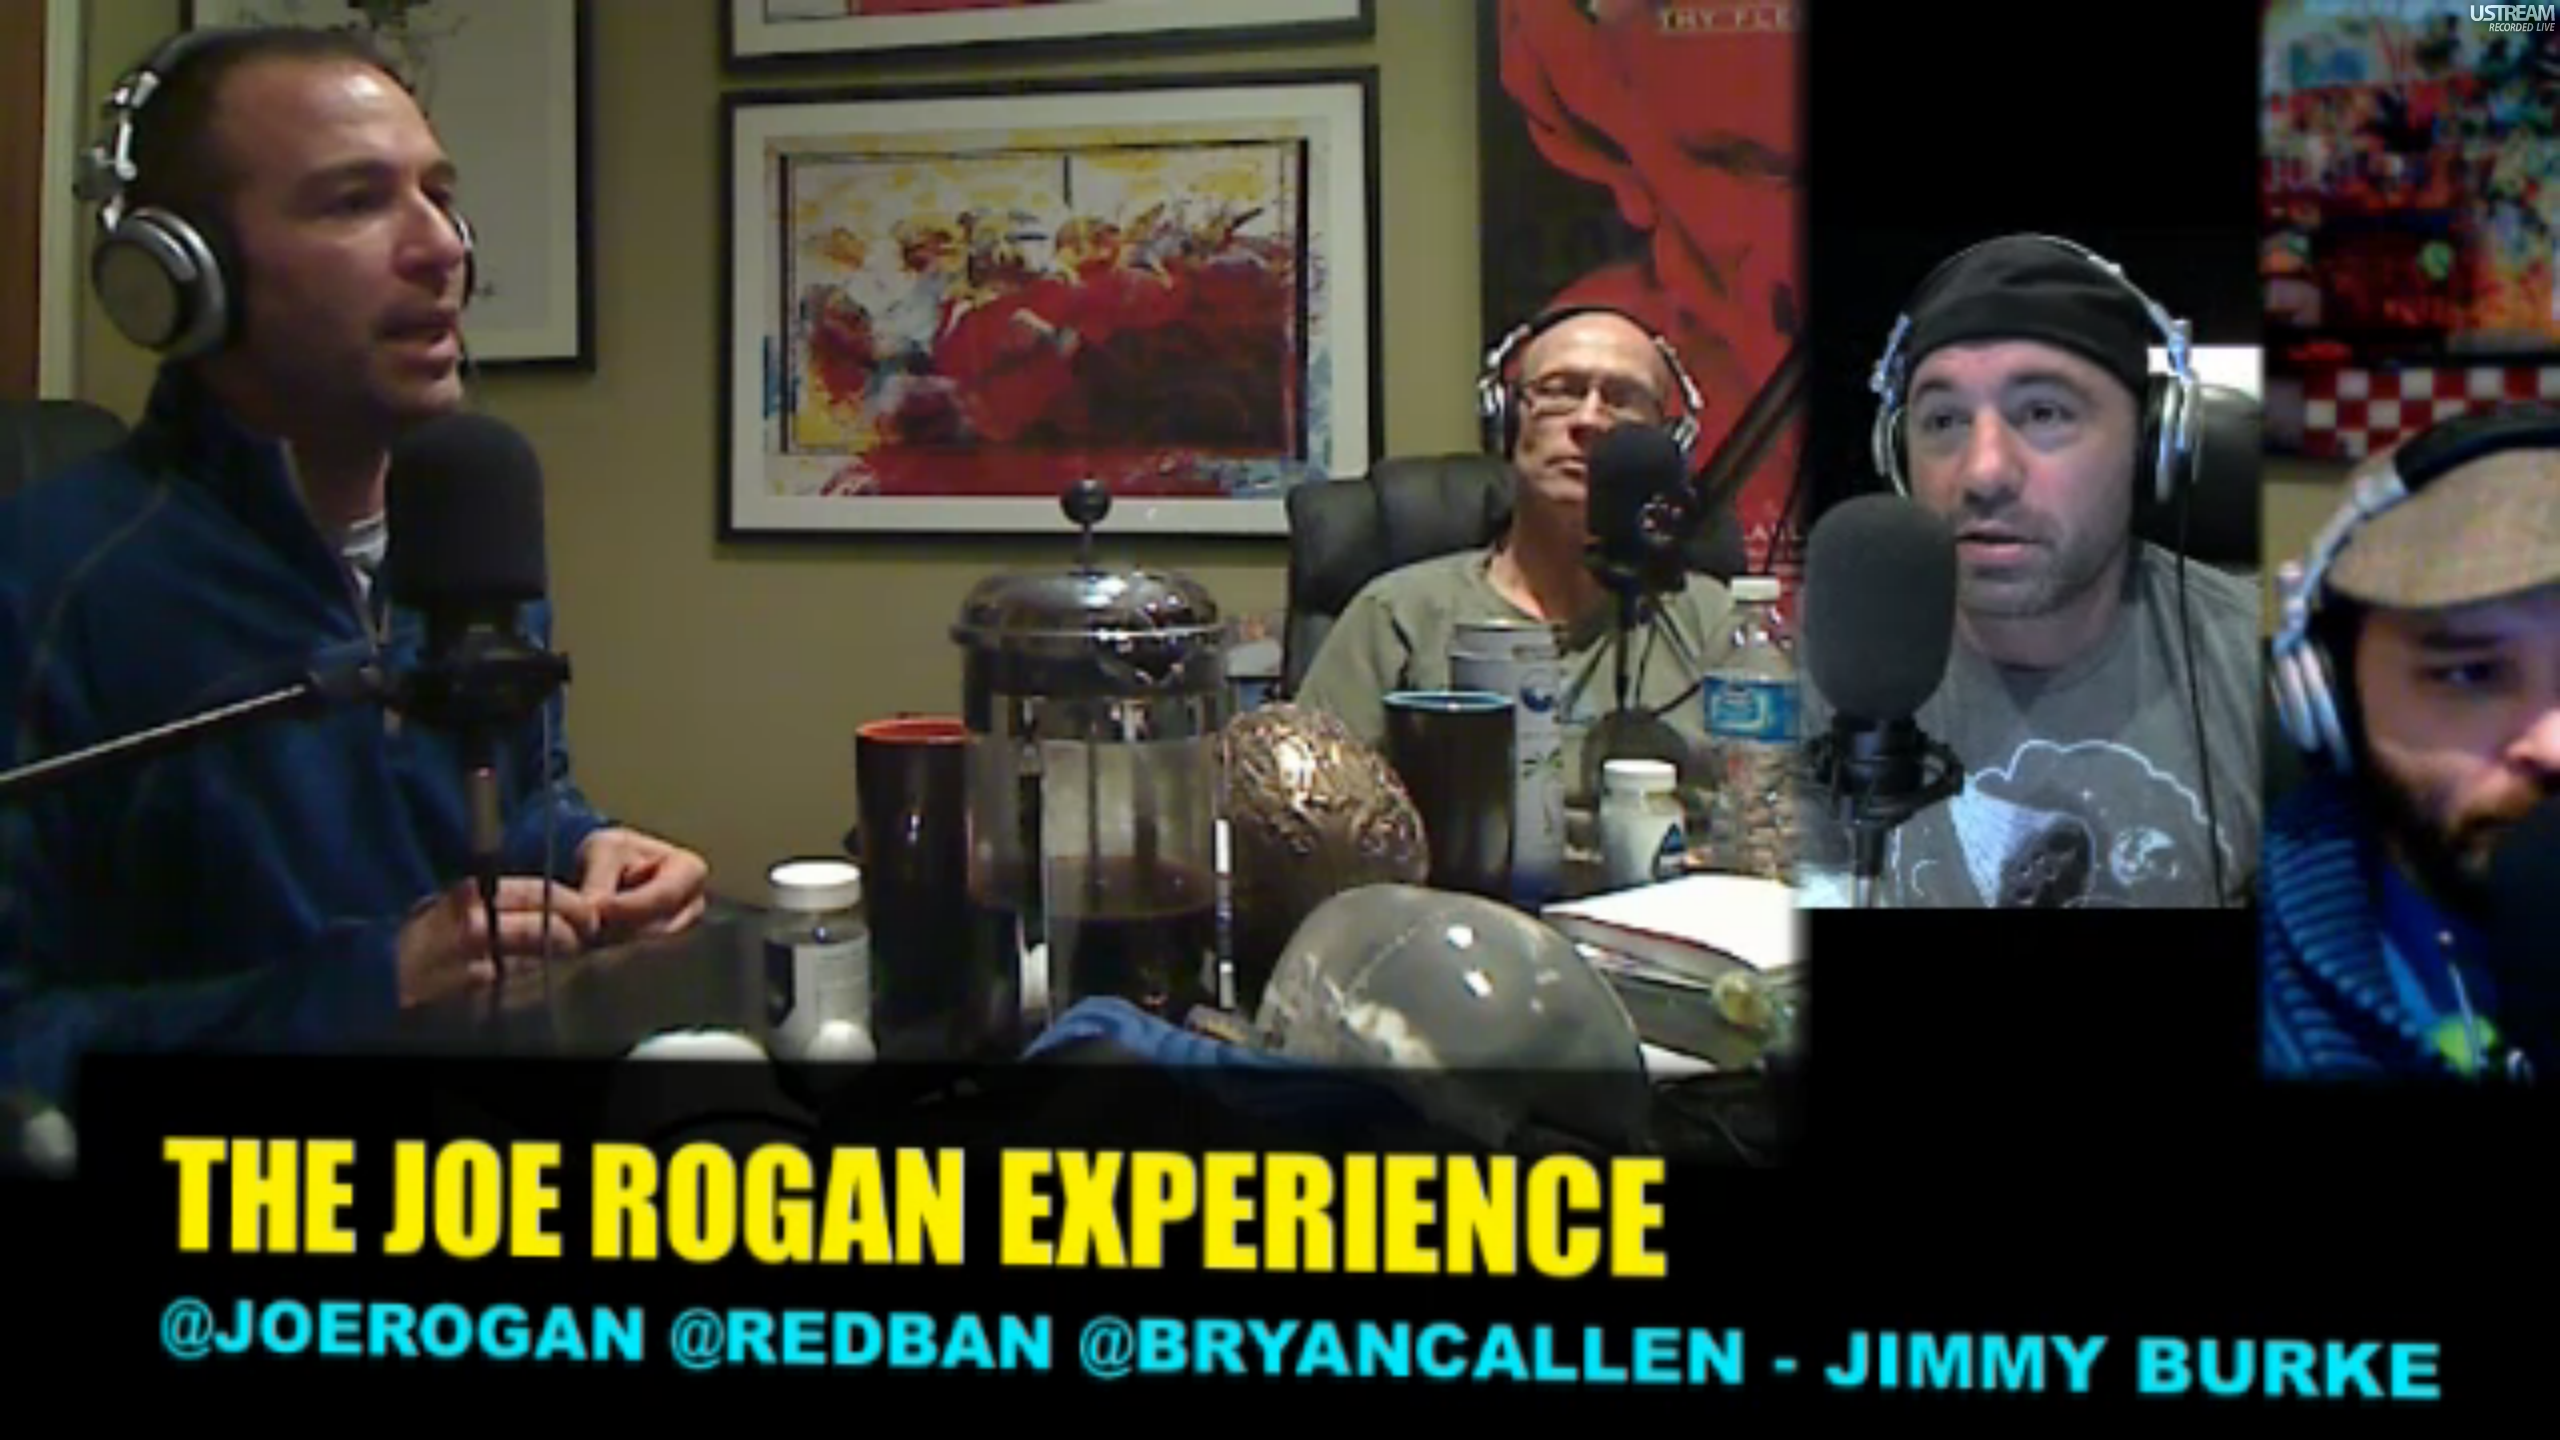 The Joe Rogan Experience PODCAST #182 - Bryan Callen, Jimmy Burke, Brian Redban